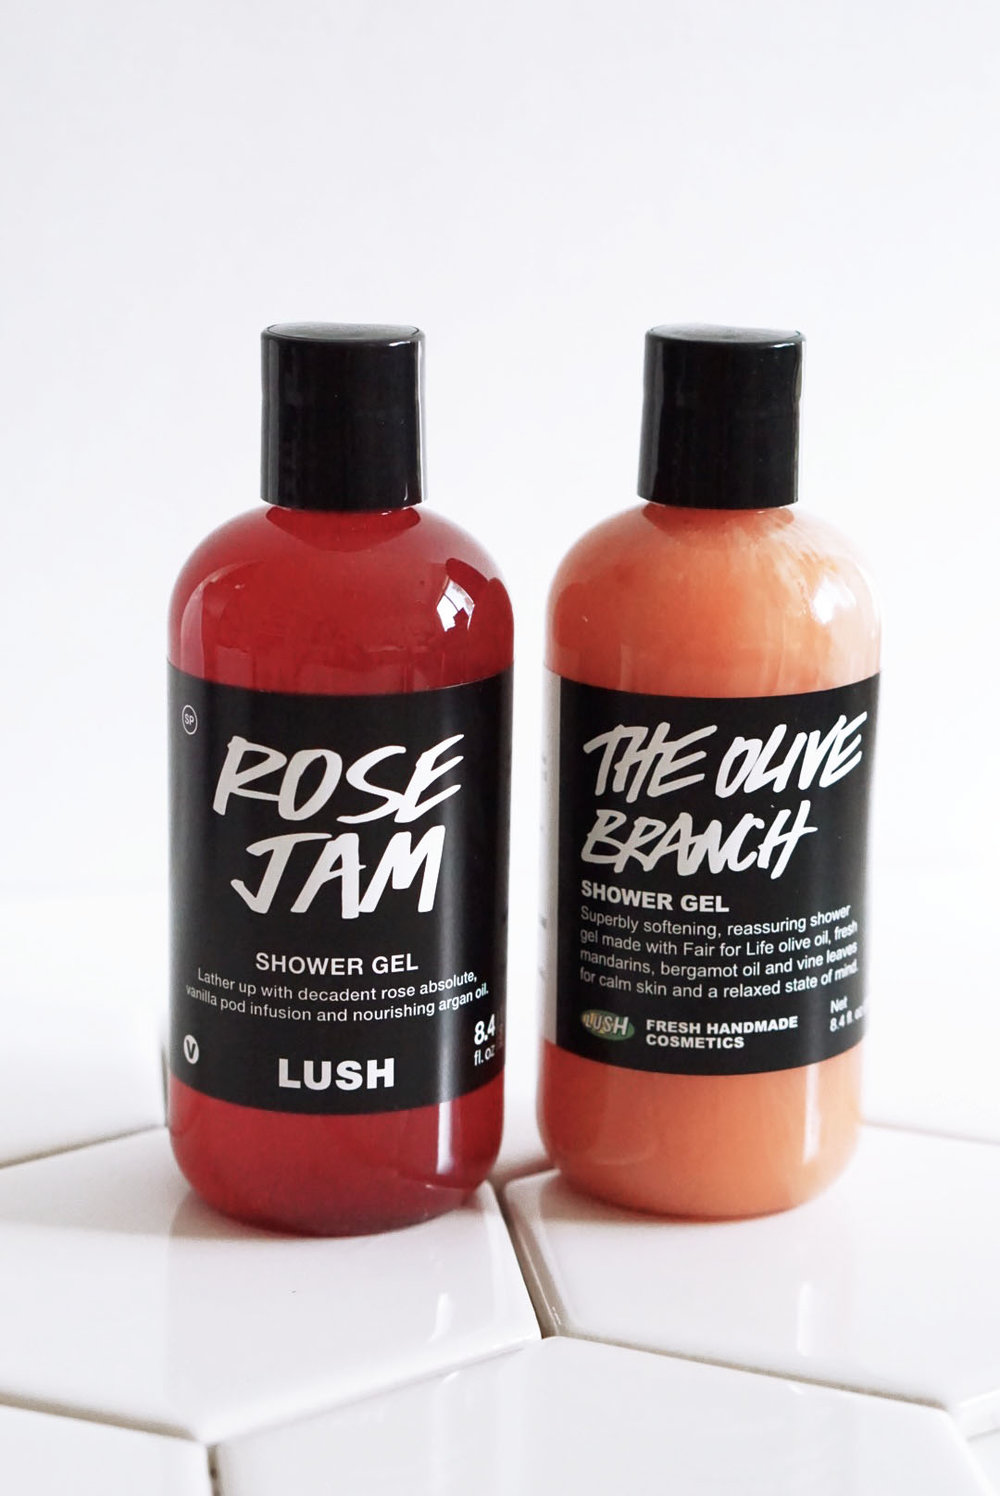 Lush-Body-Wash-Olive-Branch-Jam